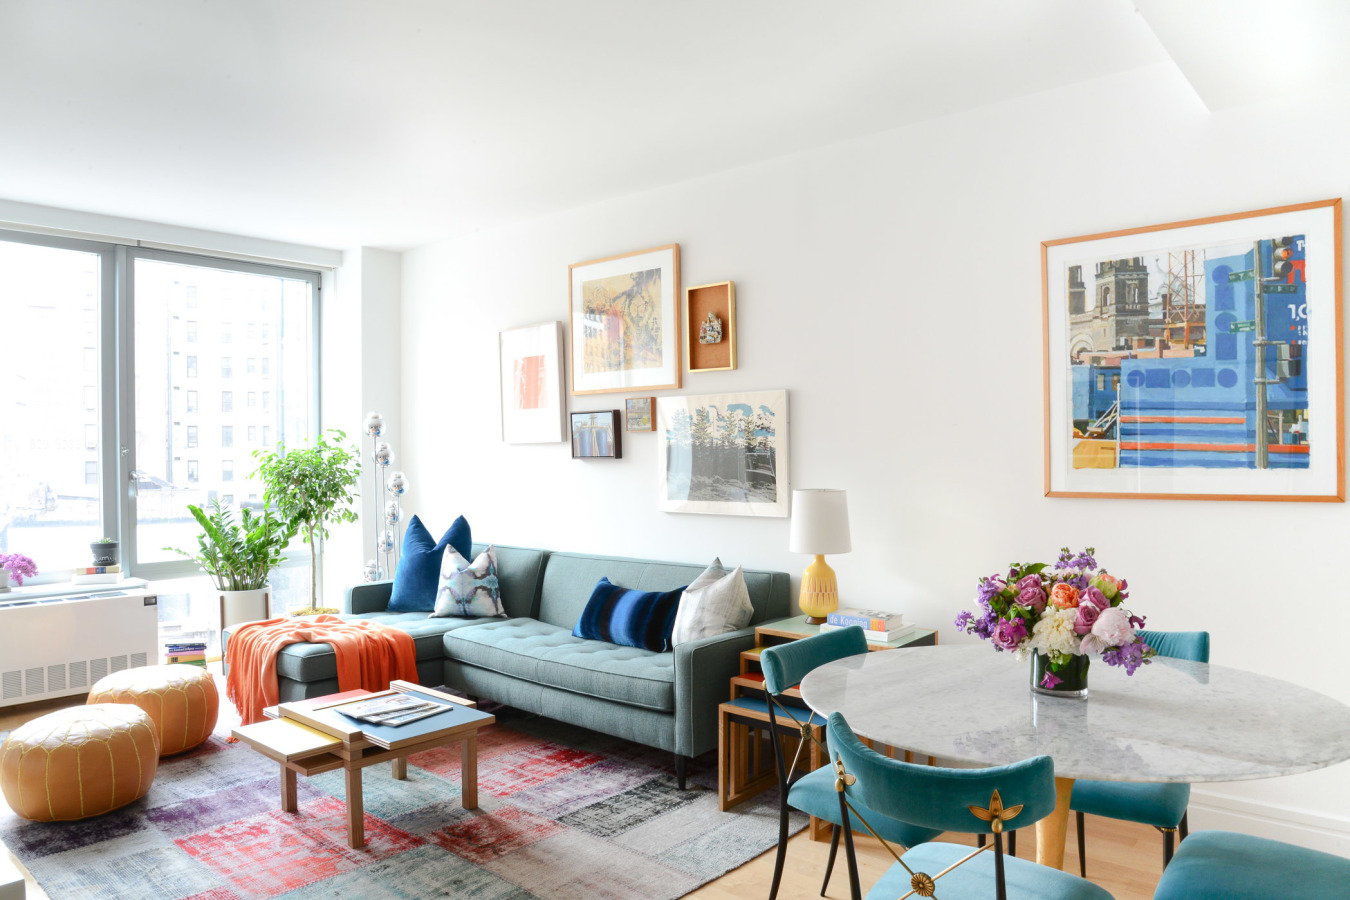 Homepolish-13527-decorating-57ce4e6a-1350x900.jpeg